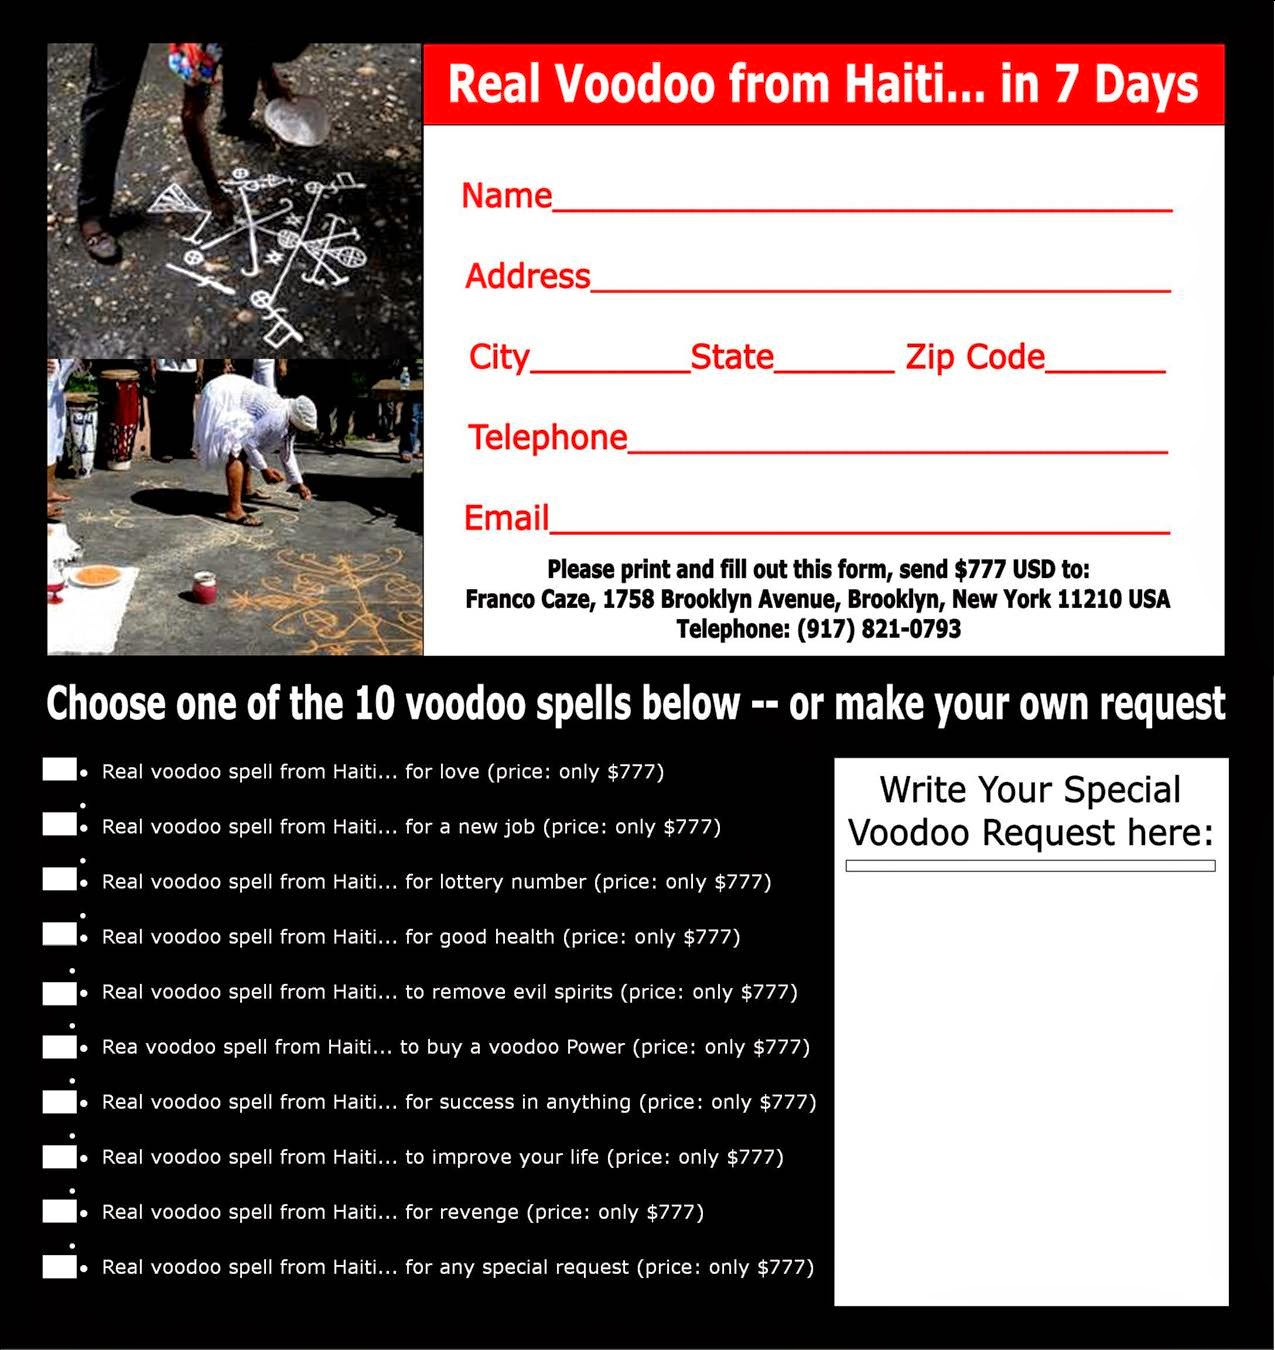 For Hire: Real Voodoo Priest from Haiti    in 7 days!